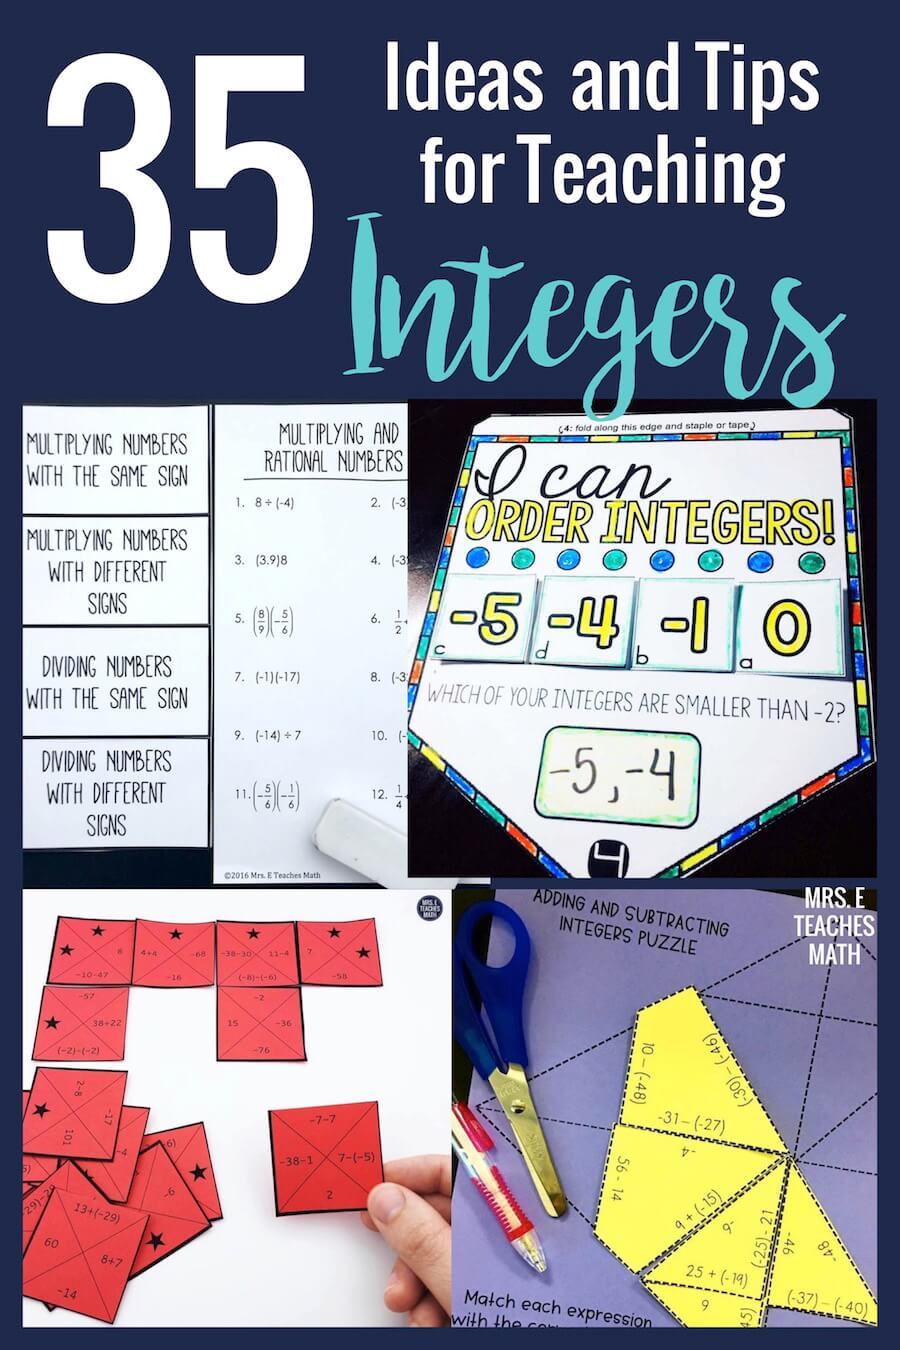 medium resolution of 35+ Ideas and Tips for Teaching Integers   Mrs. E Teaches Math